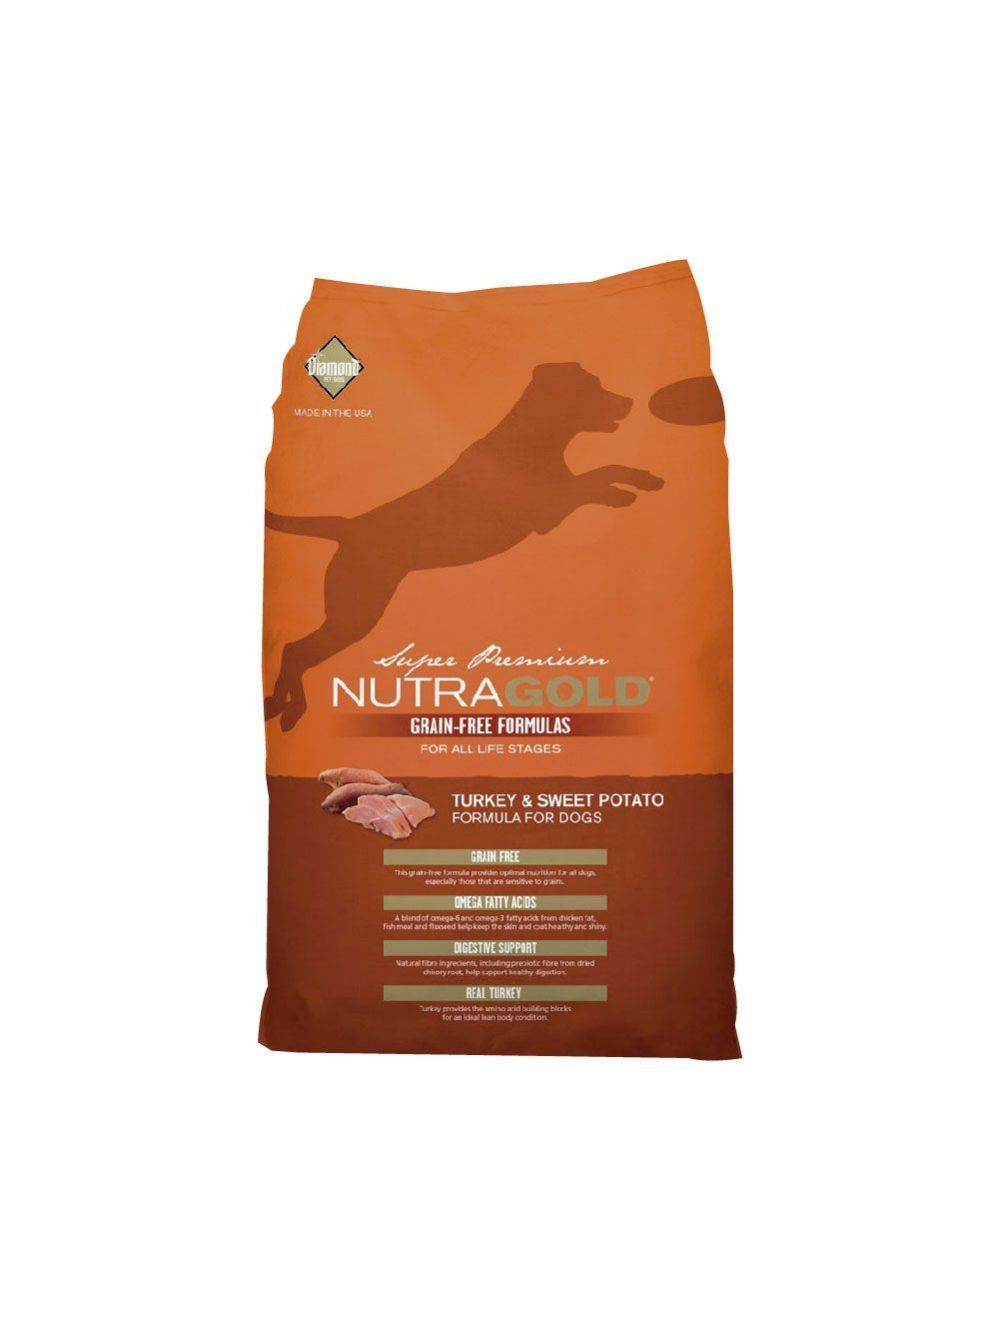 Nutra Gold Dog Grain Free Turkey and Sweet Potato